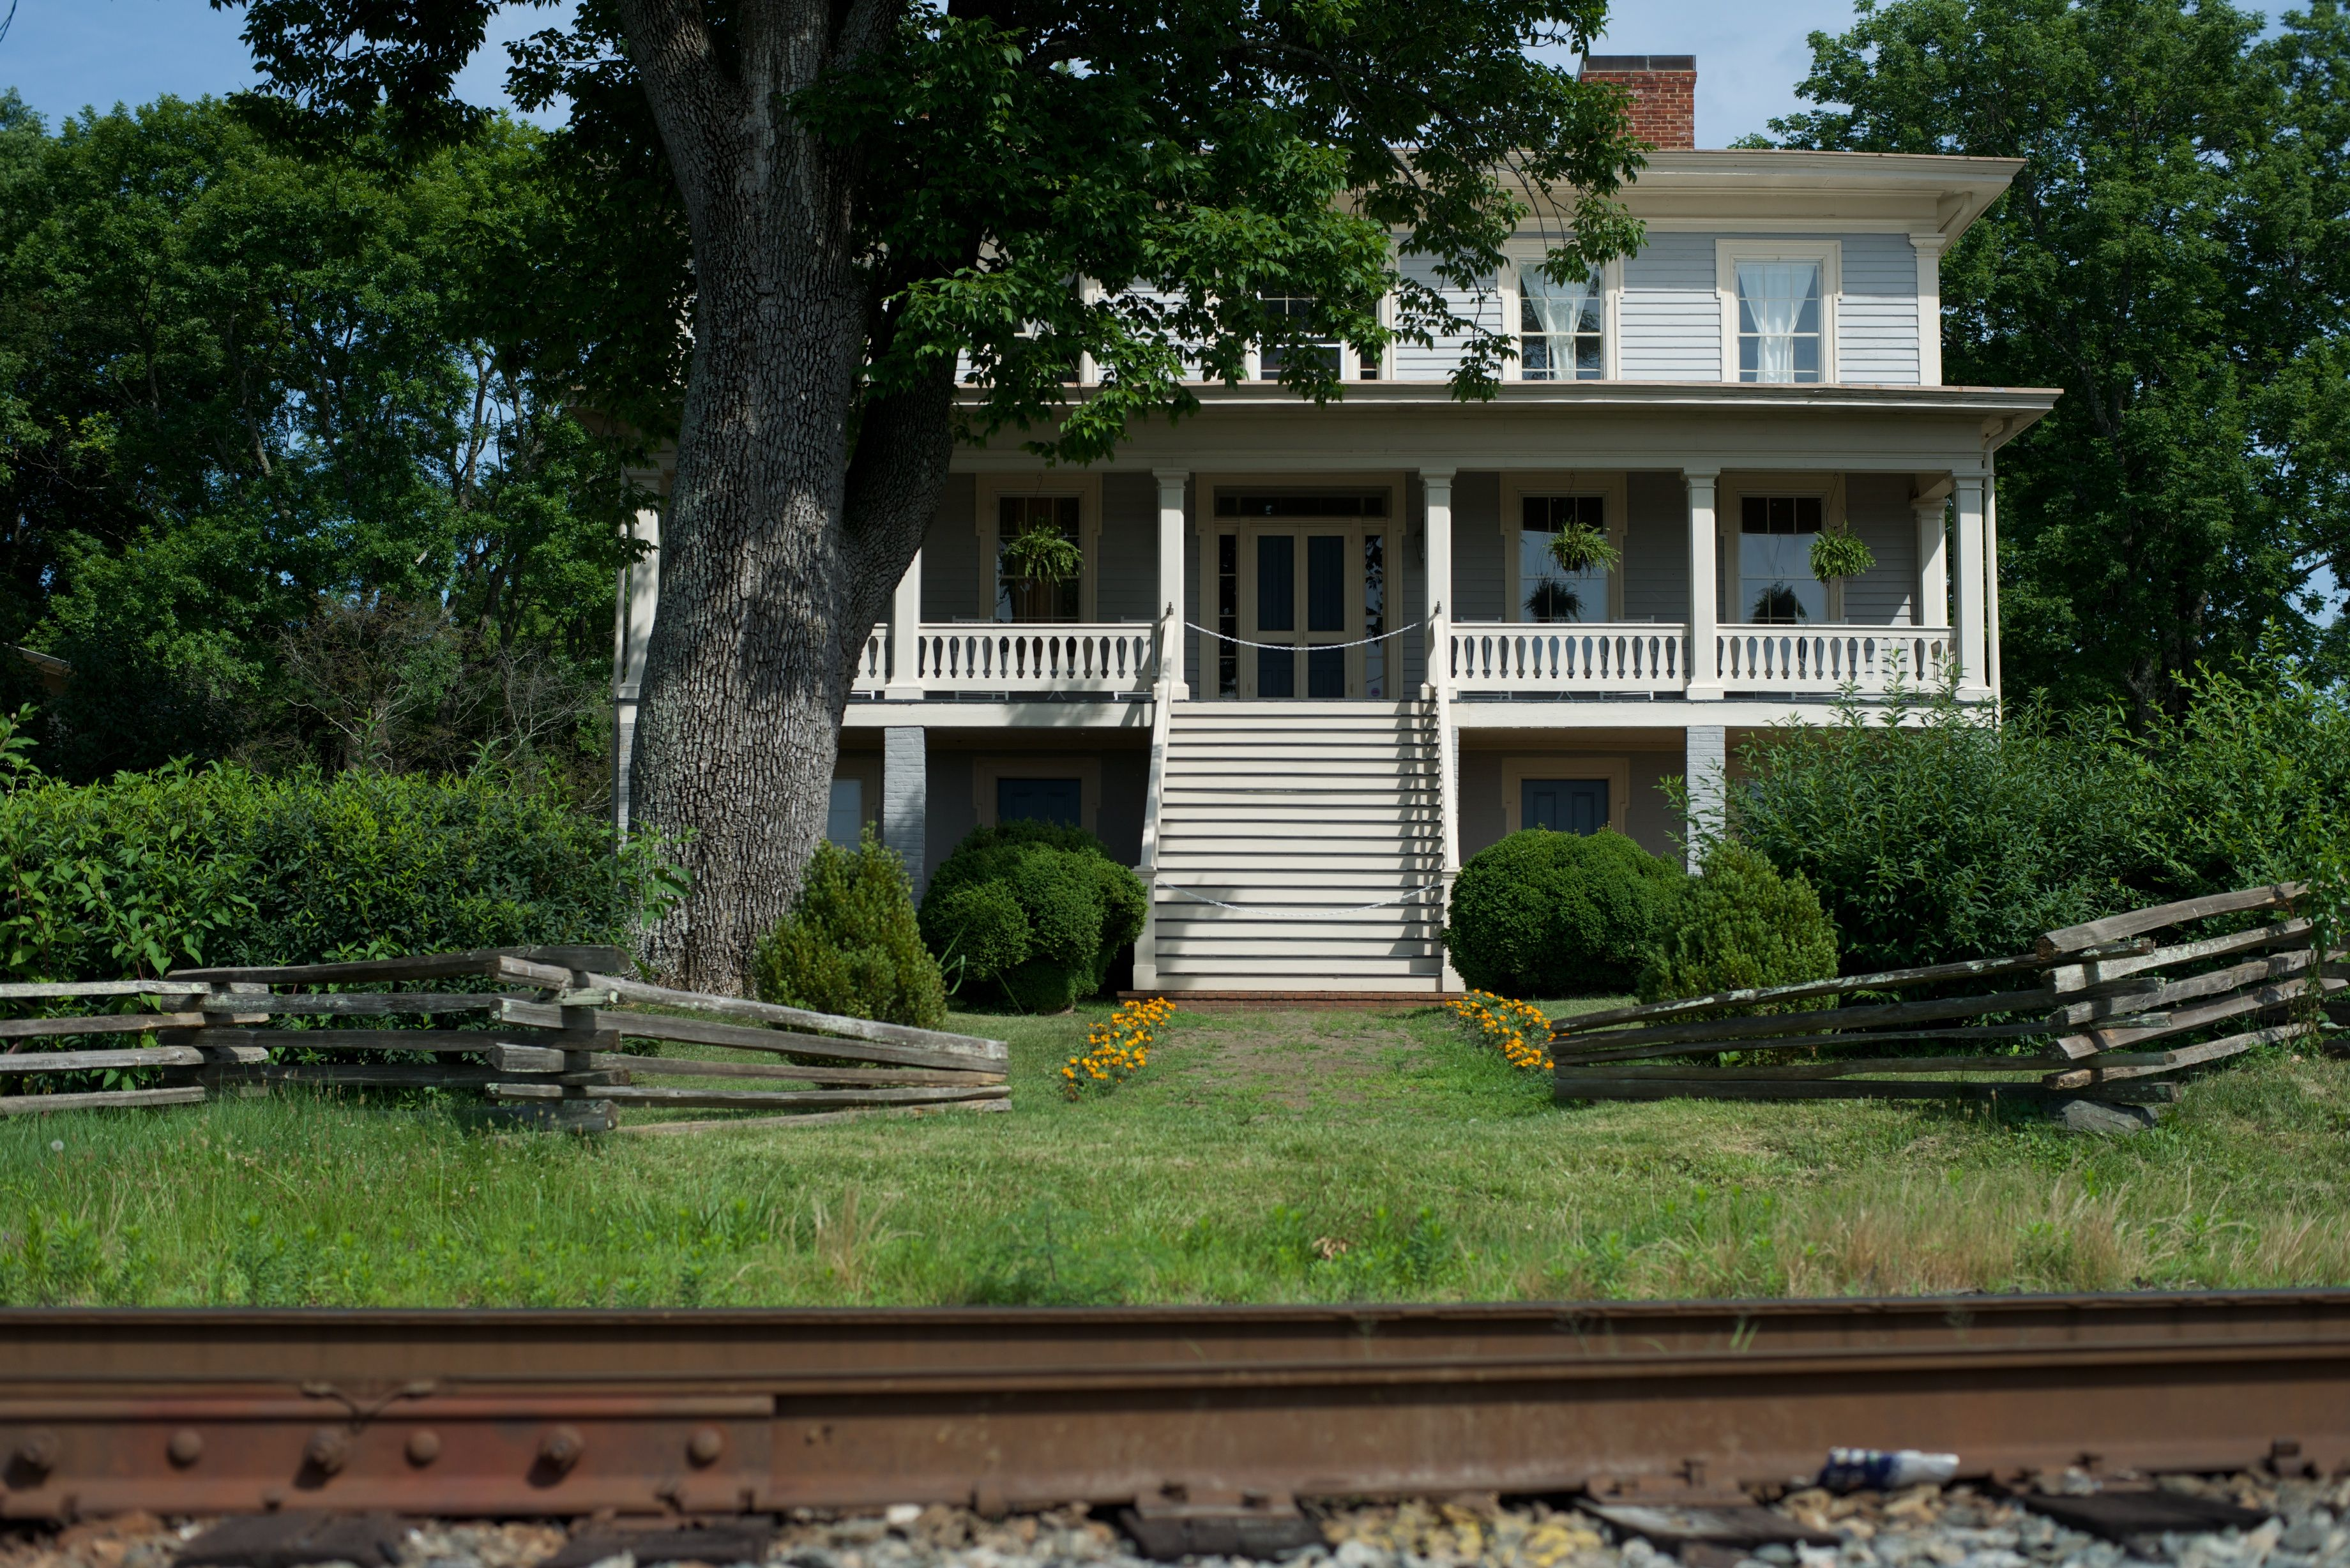 The Exchange Hotel And Civil War Museum In Gordonsville Va Served As A Receiving Hospital During